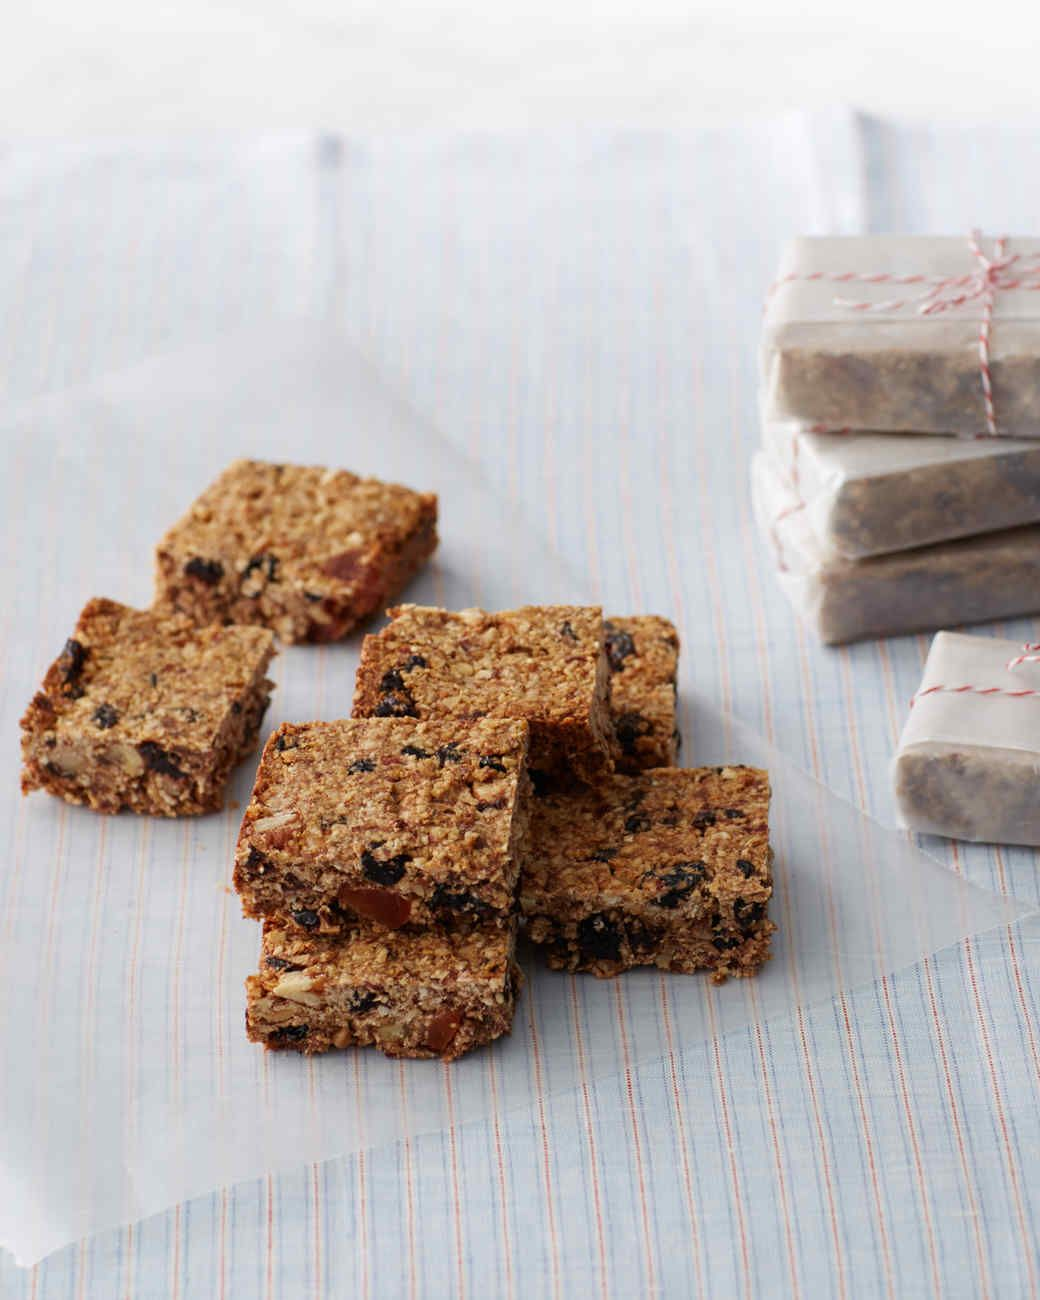 Dried Fruit And Nut Health Bars Recipe Recipe Breakfast Bars Healthy Breakfast Bars Recipe Fruit And Nut Bars